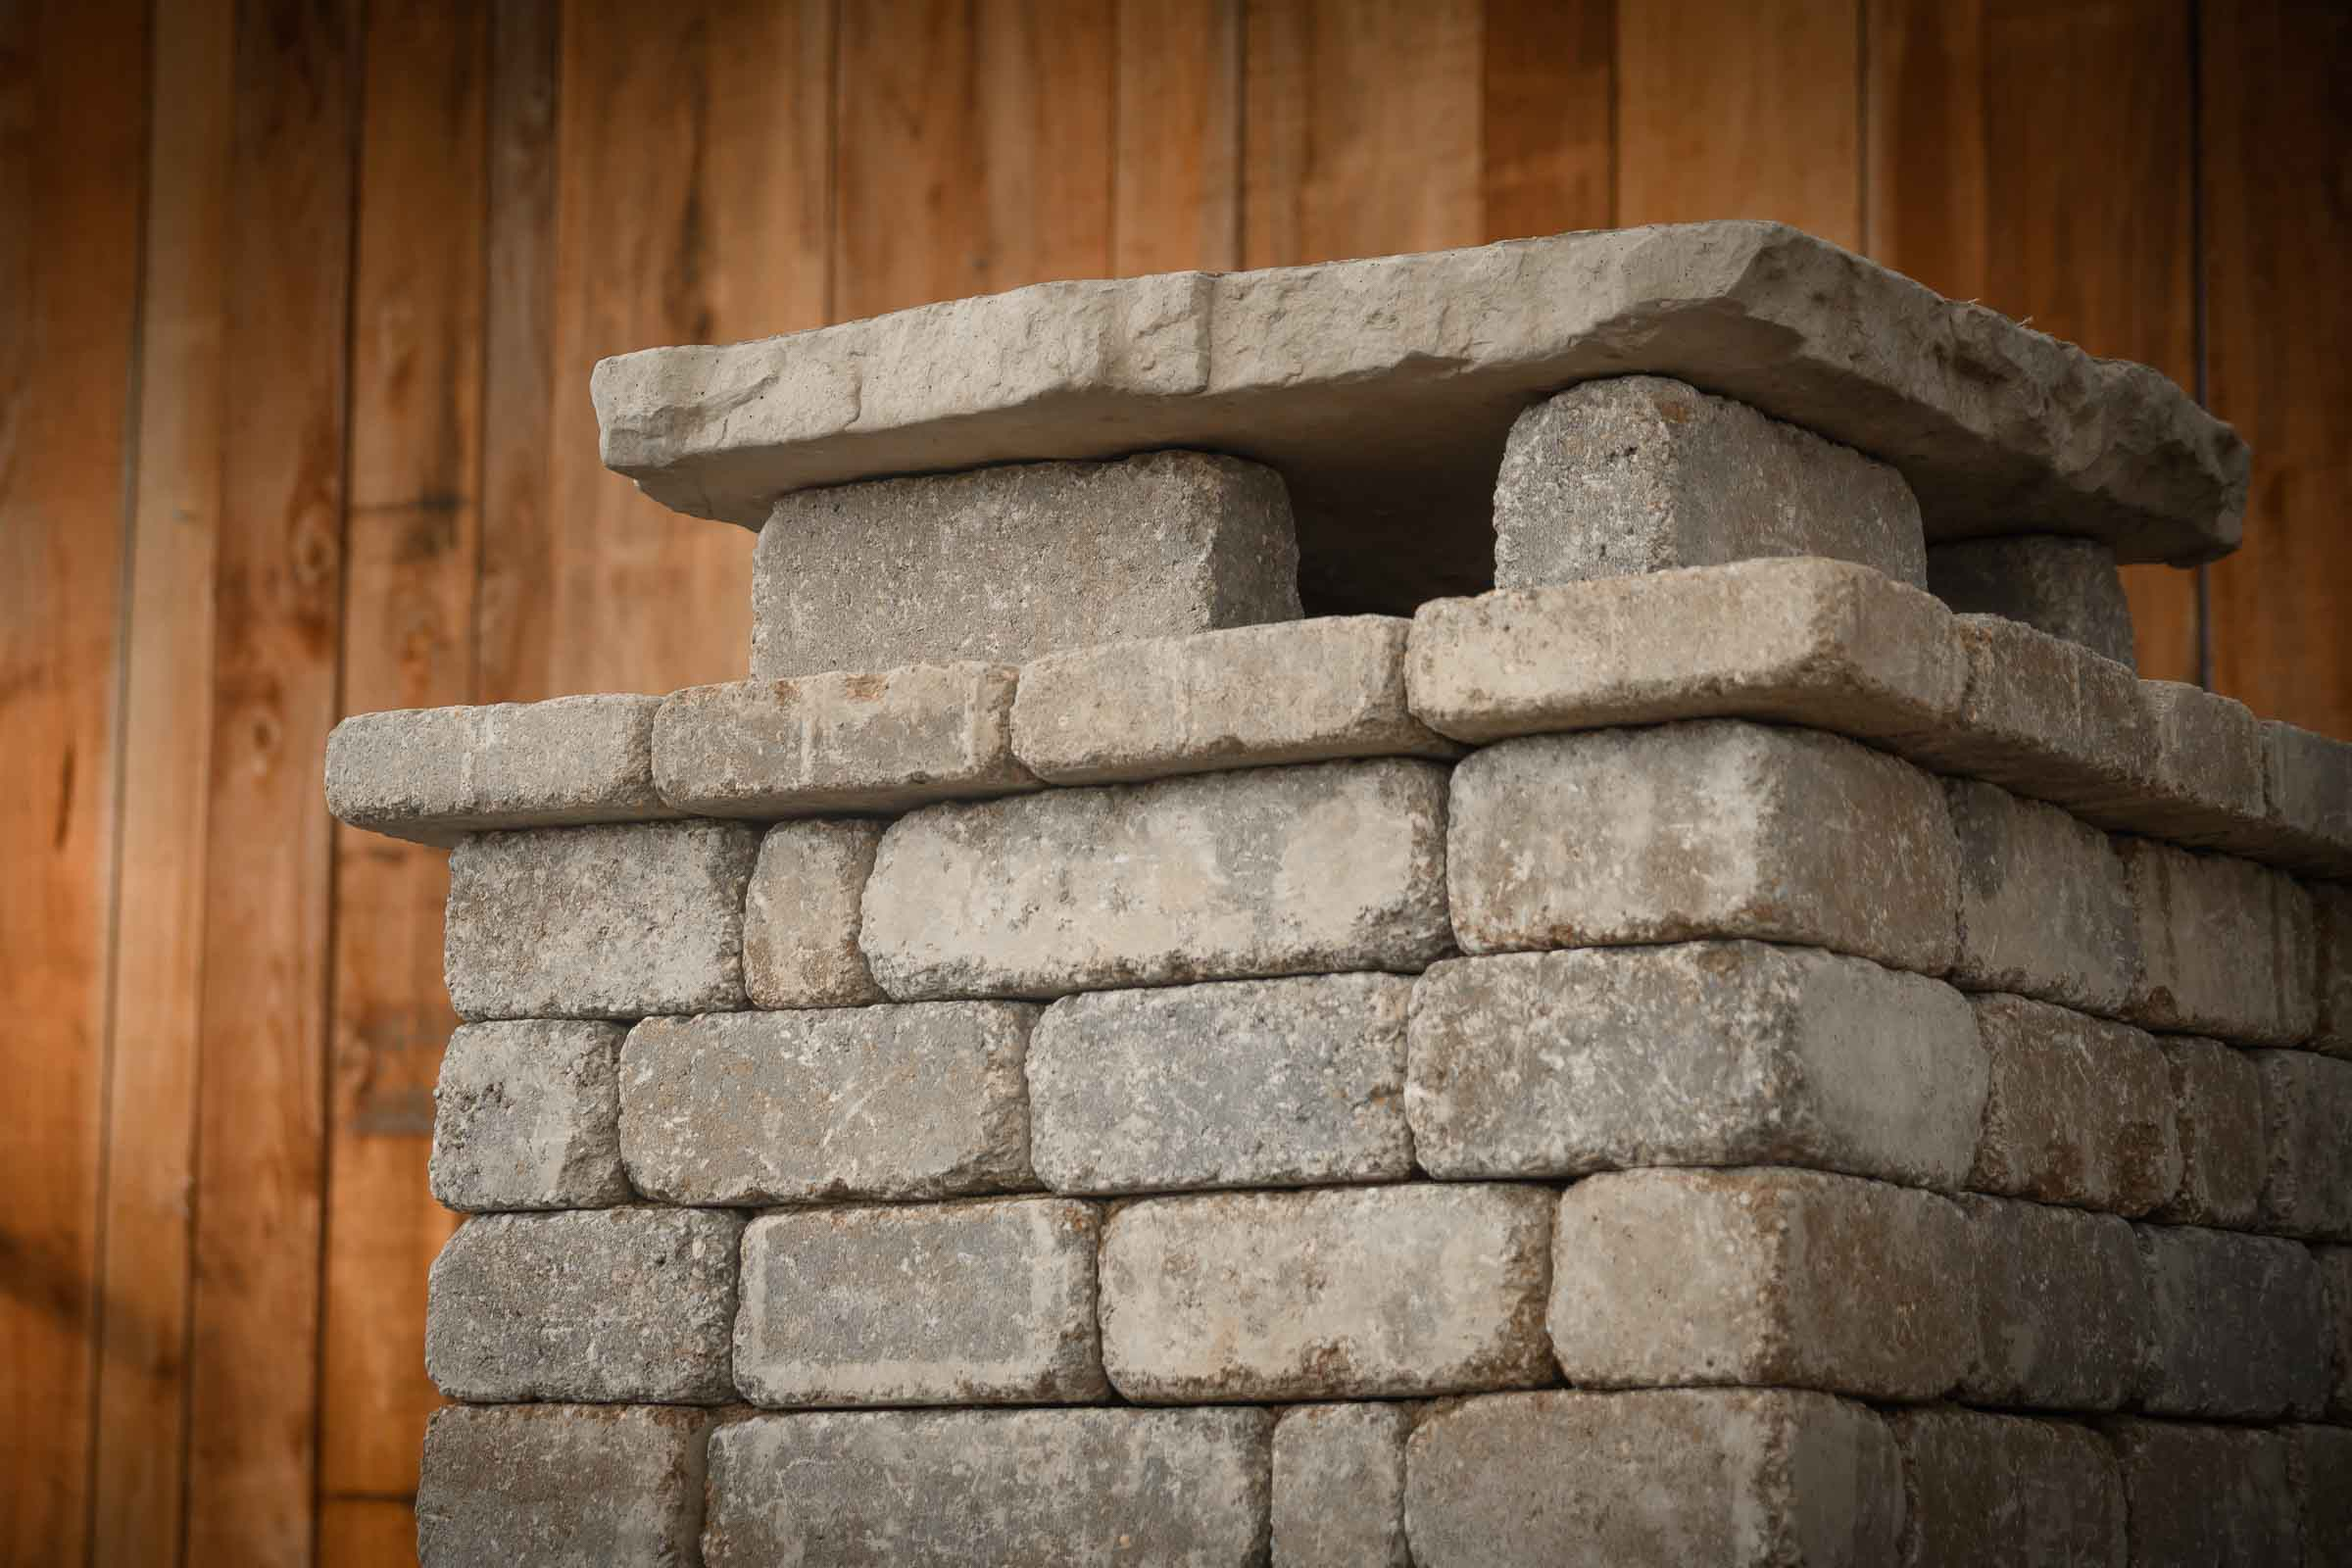 Diy Outdoor Fremont Fireplace Kit Makes Hardscaping Simple